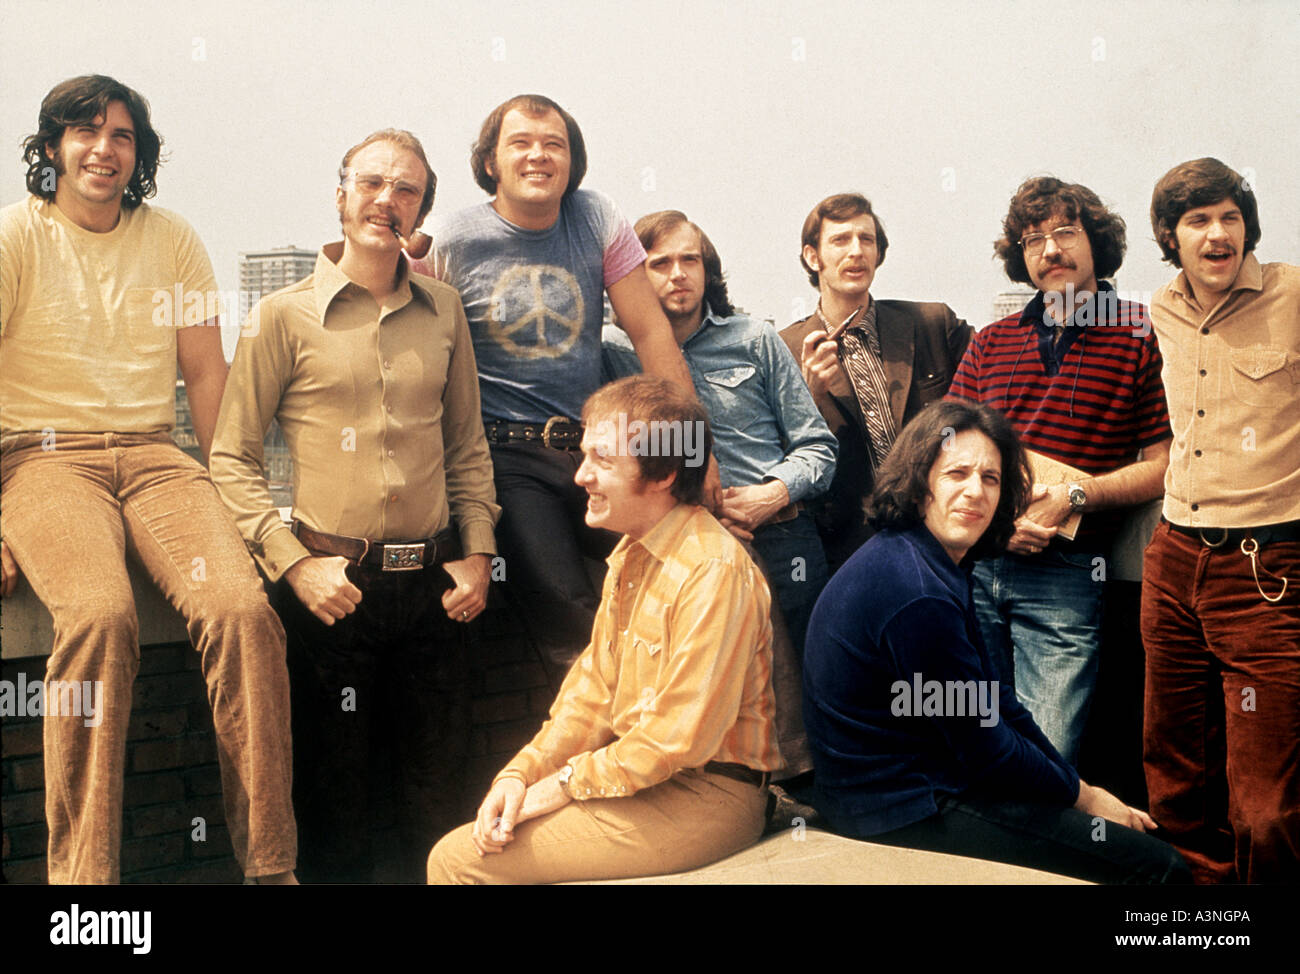 BLOOD SWEAT AND TEARS American Canadian group in 1969 Stock Photo - Alamy